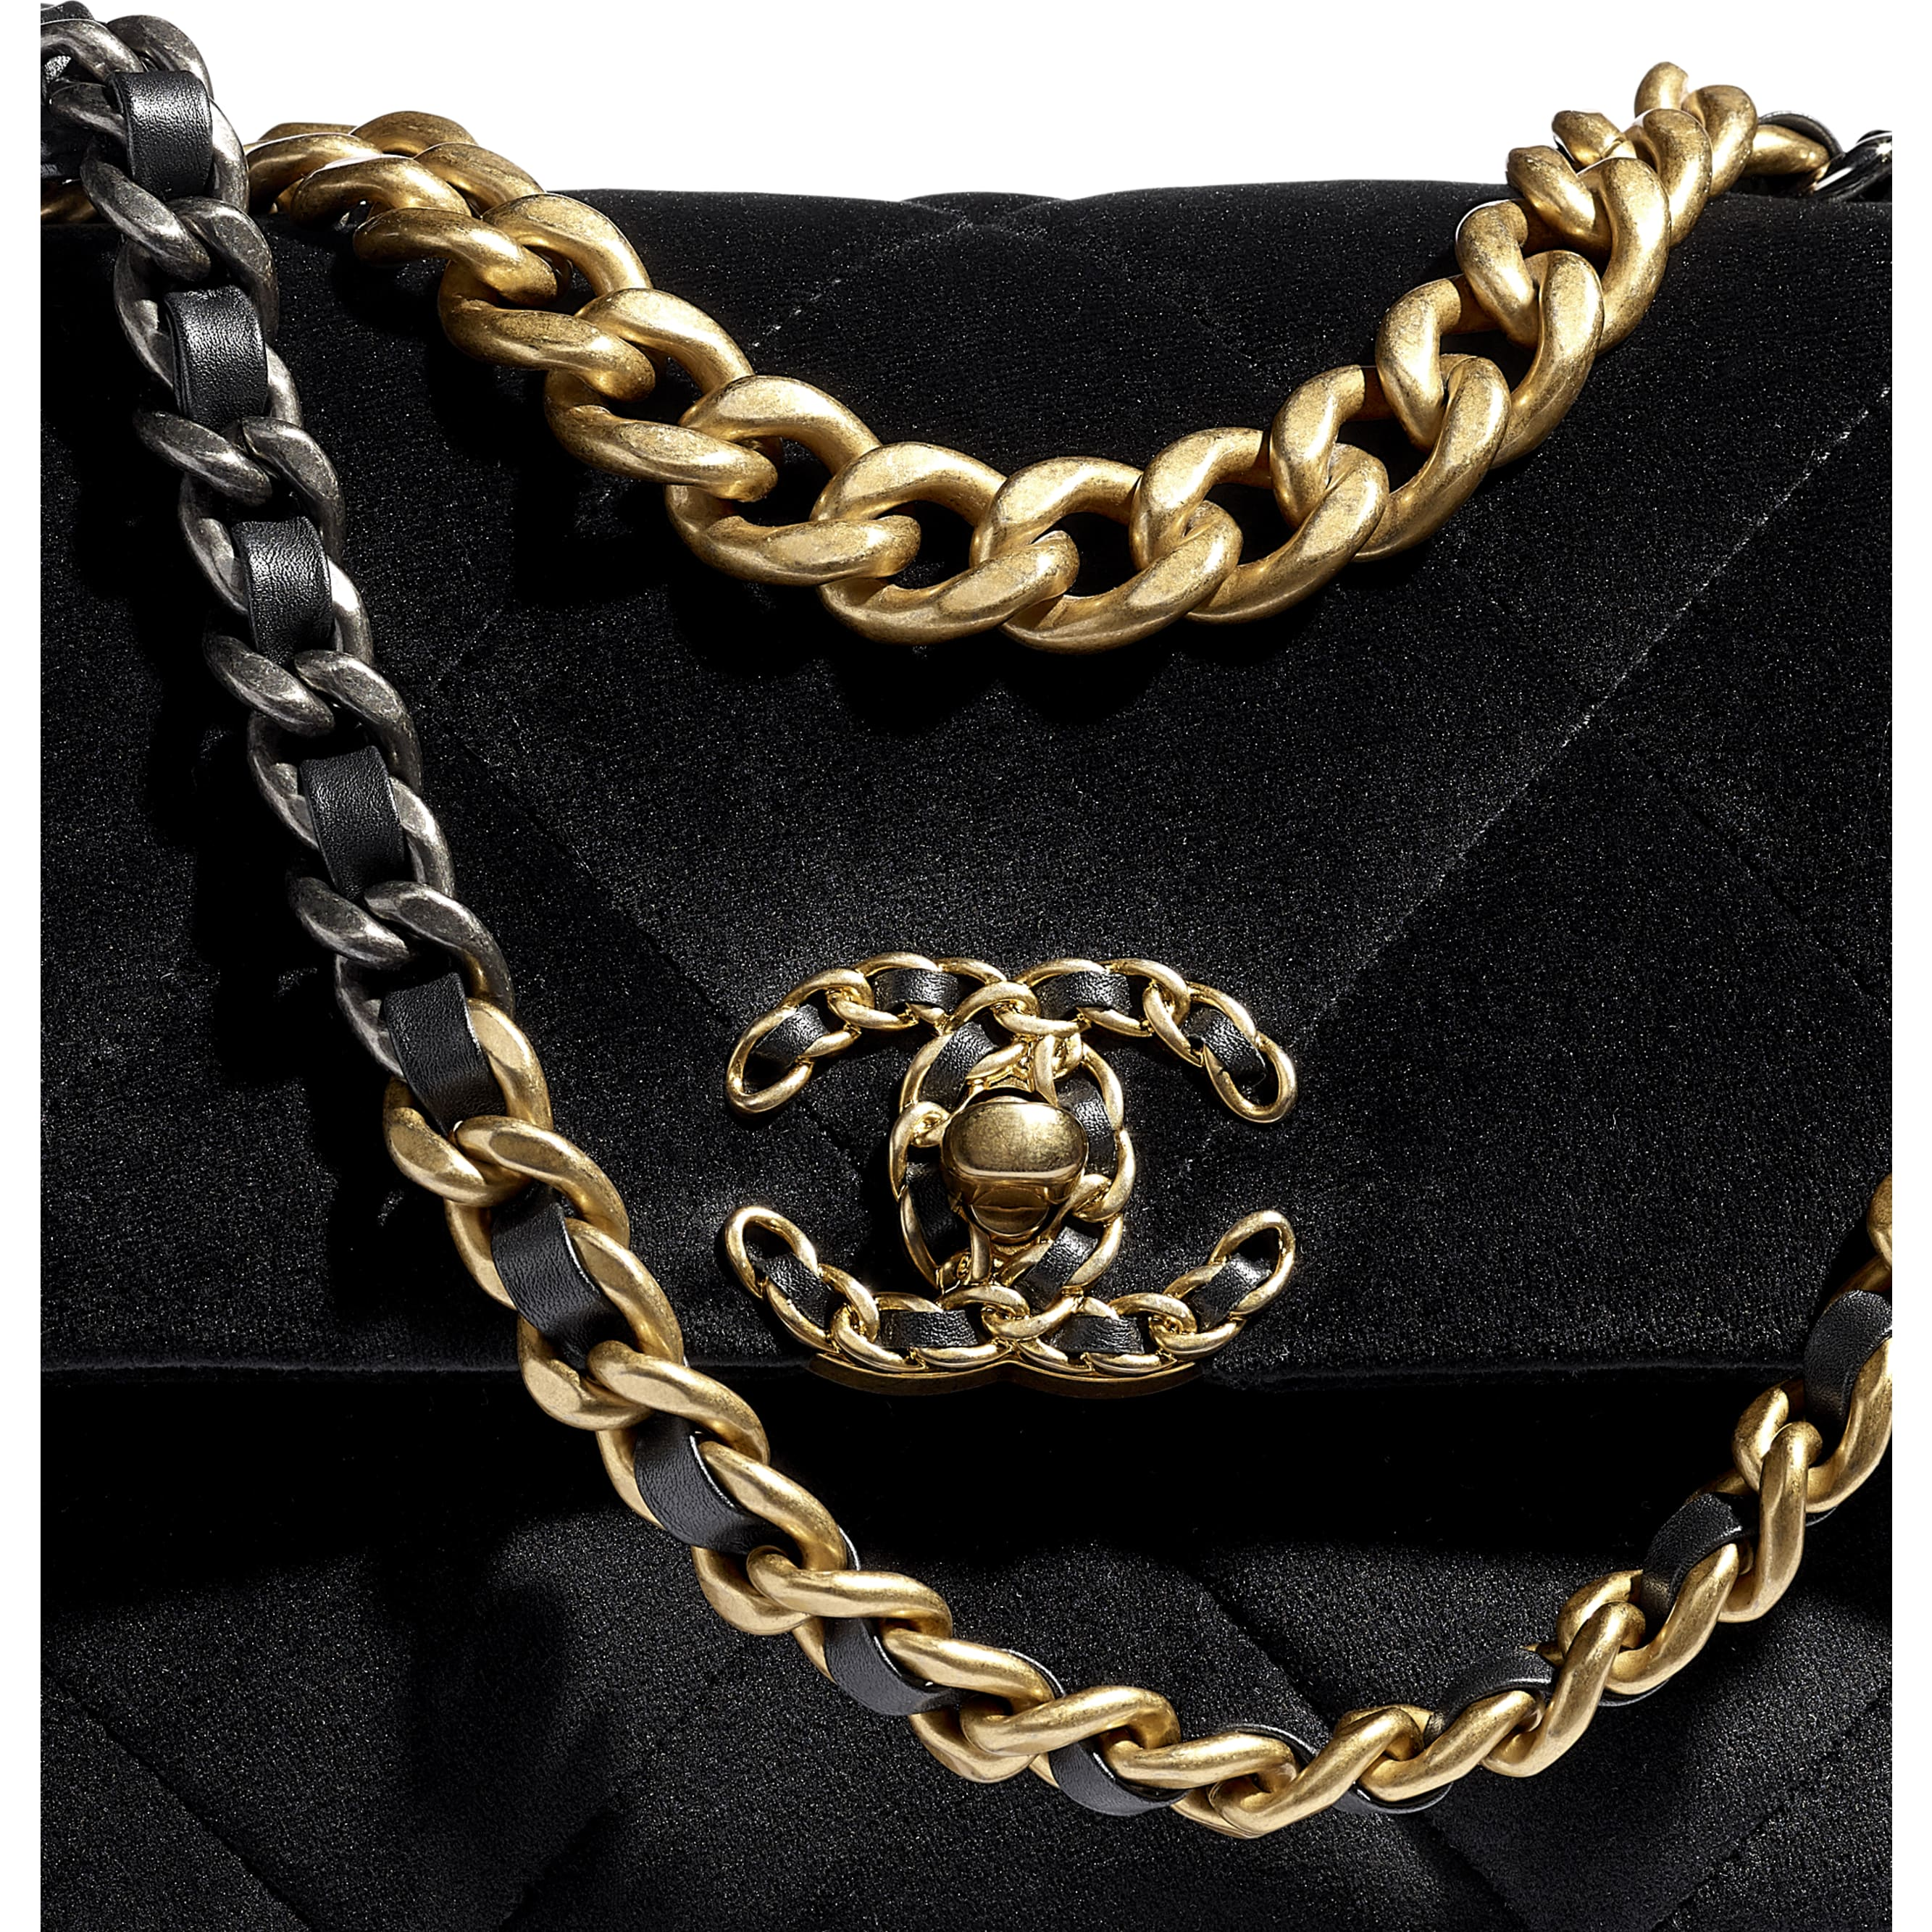 CHANEL 19 Flap Bag - Black - Velvet, Black & Gold-Tone Metal - CHANEL - Extra view - see standard sized version